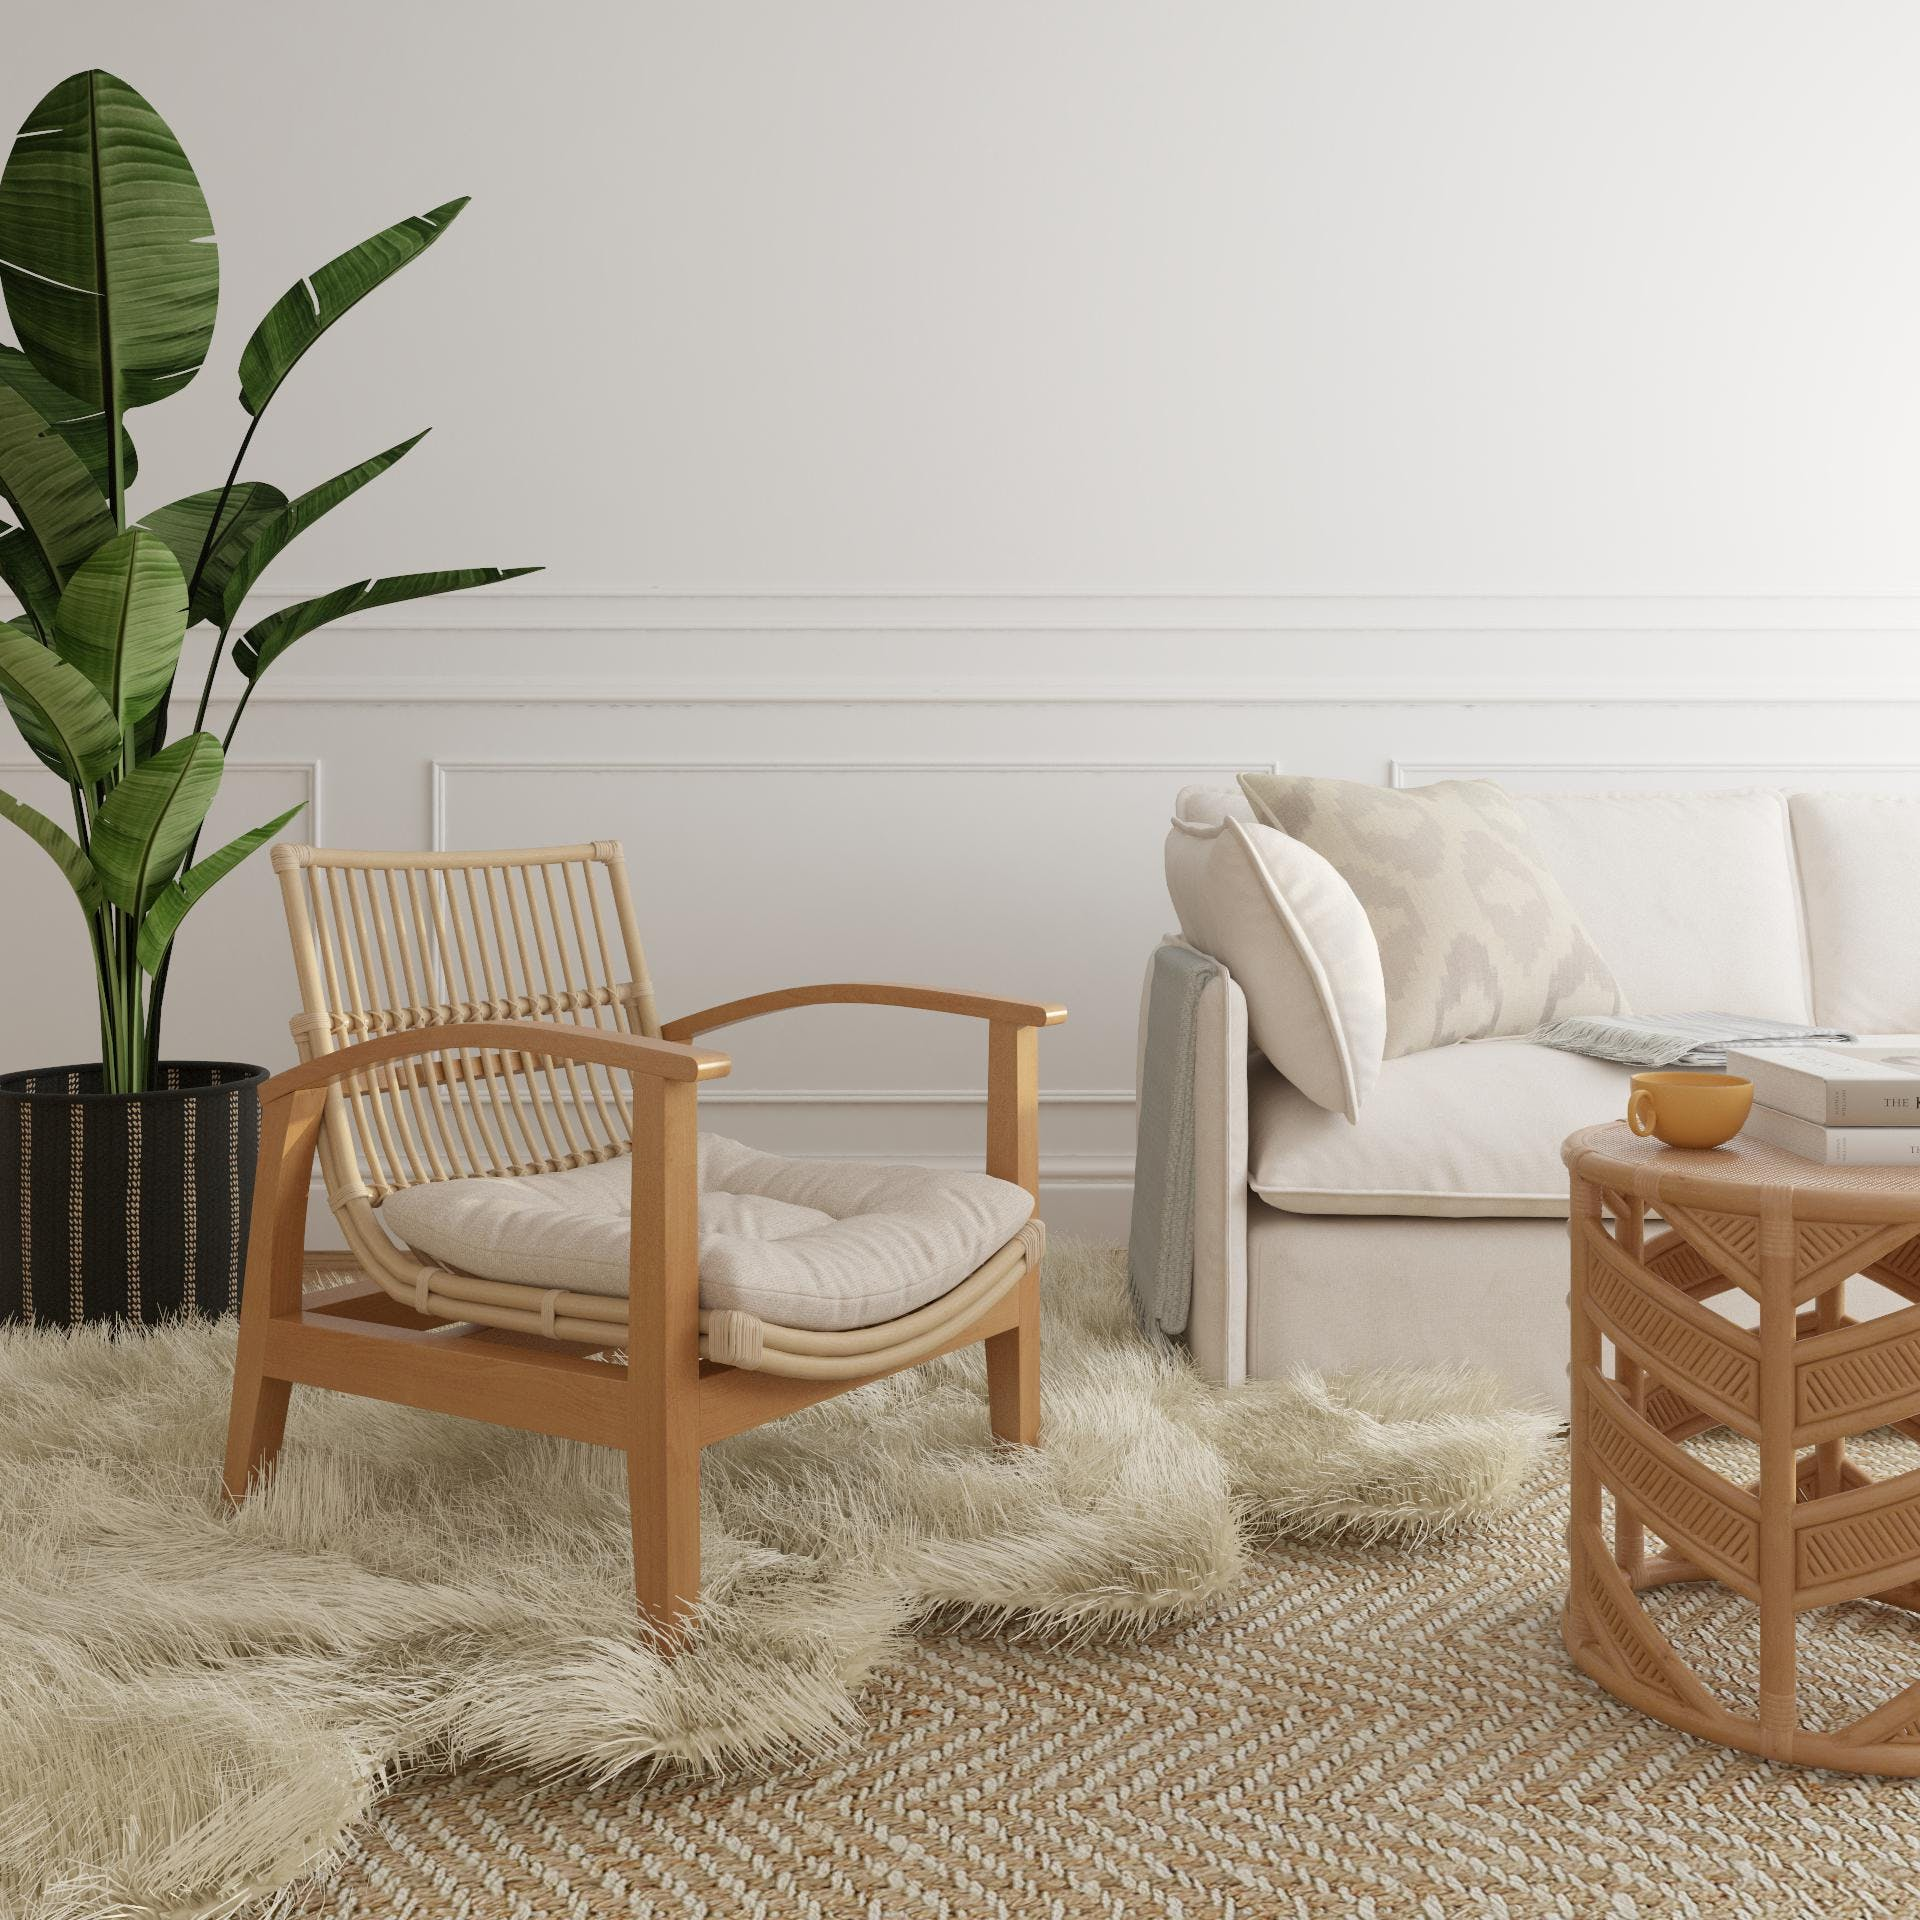 A Nature-Inspired Living Room